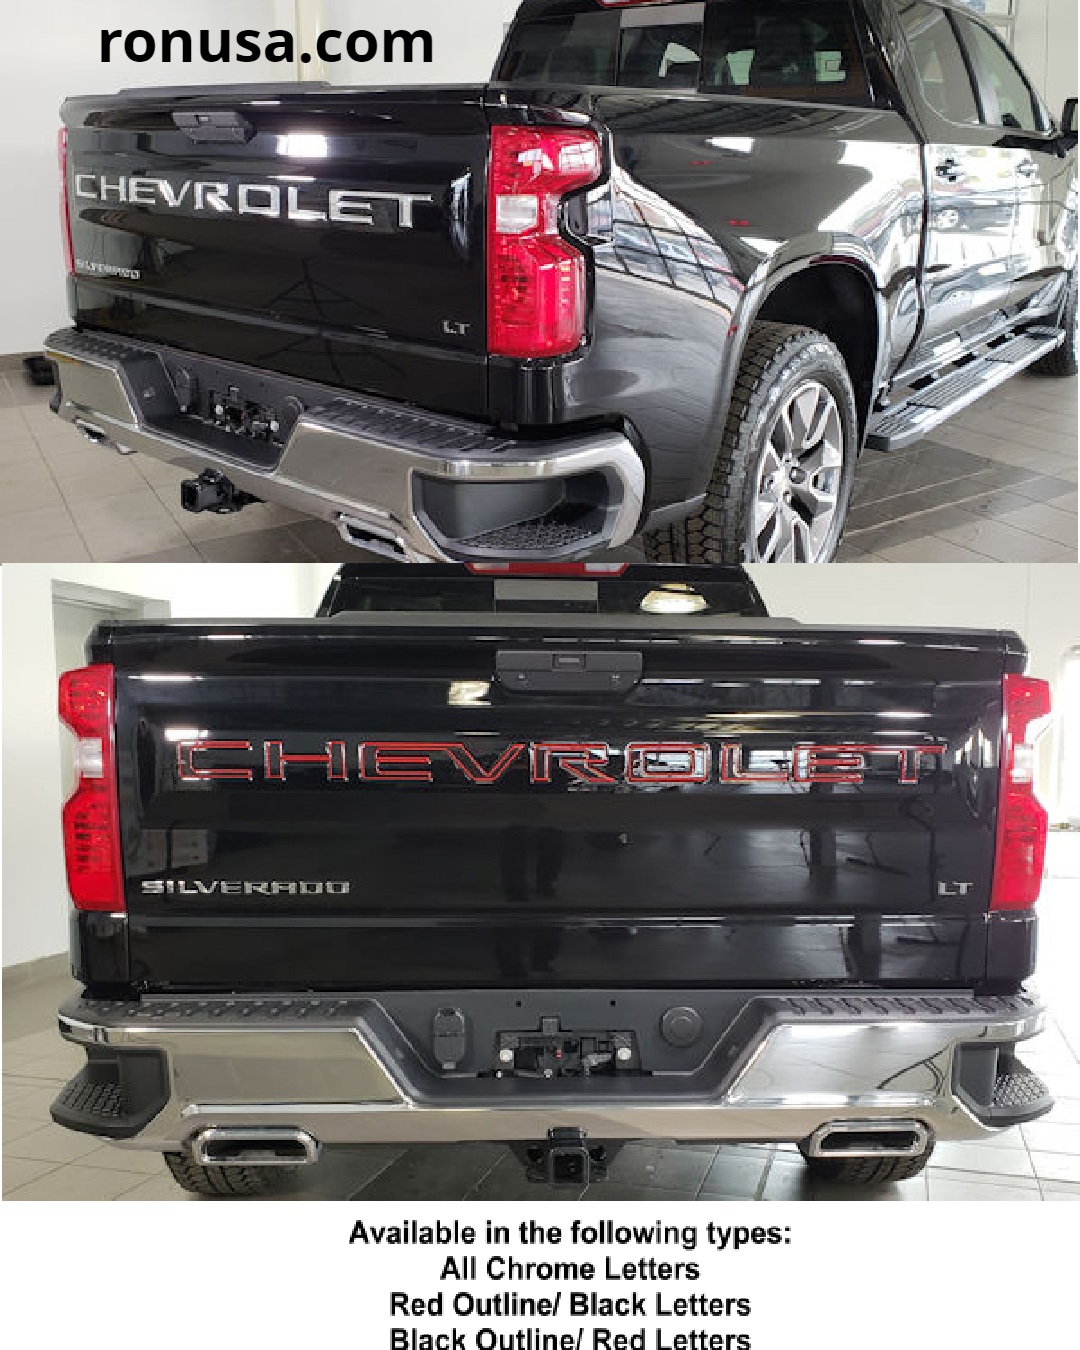 Pin By J Slagle On Chevy 2019 Silverado Accessories Chevy